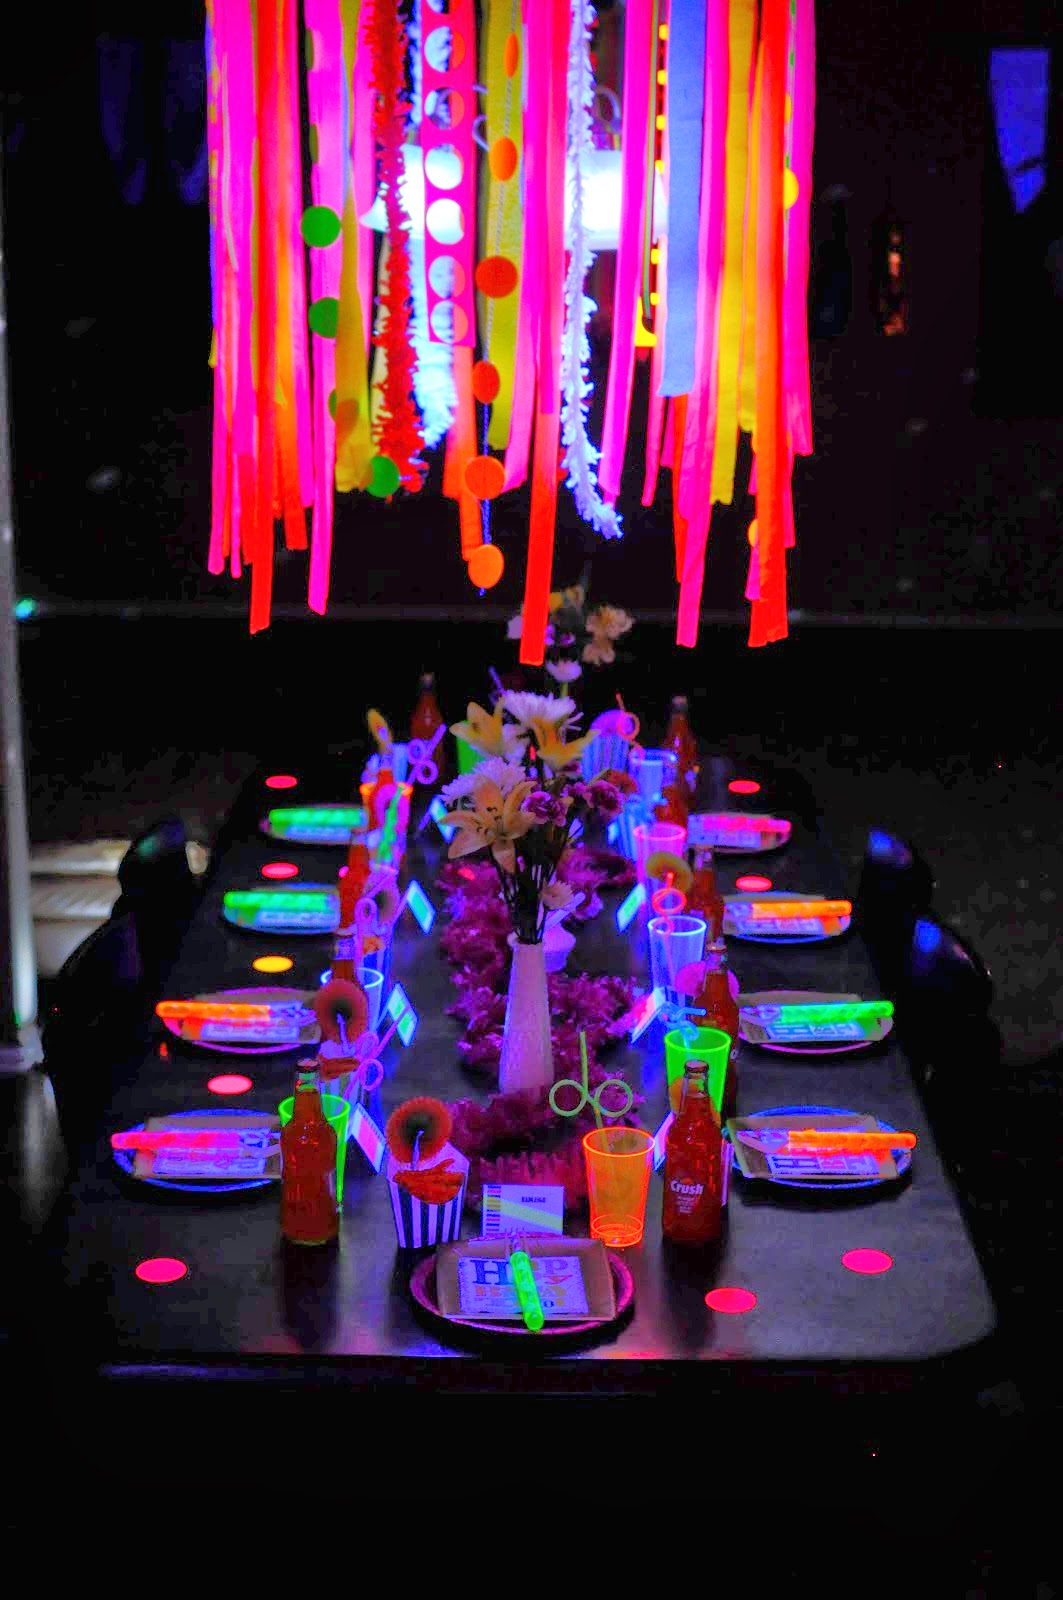 Tables en f te une d coration d 39 anniversaire fluorescente for Decoration pour